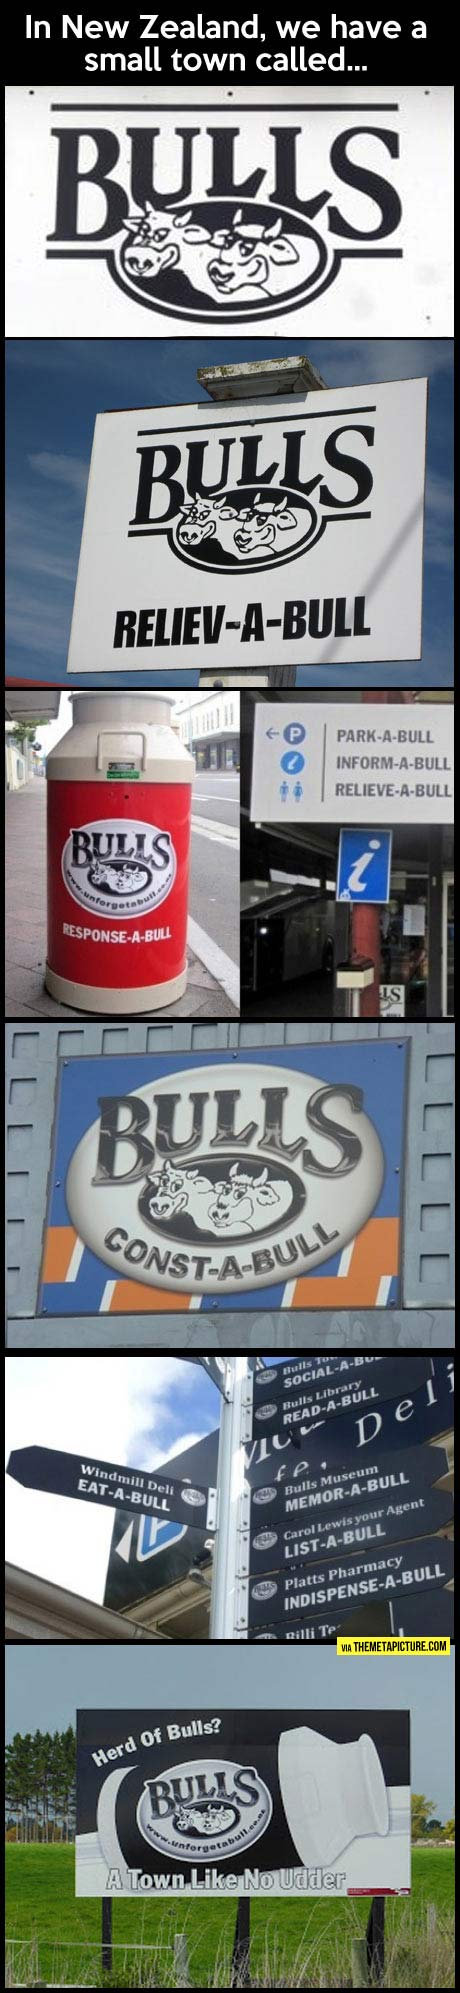 funny-New-Zealand-town-bulls